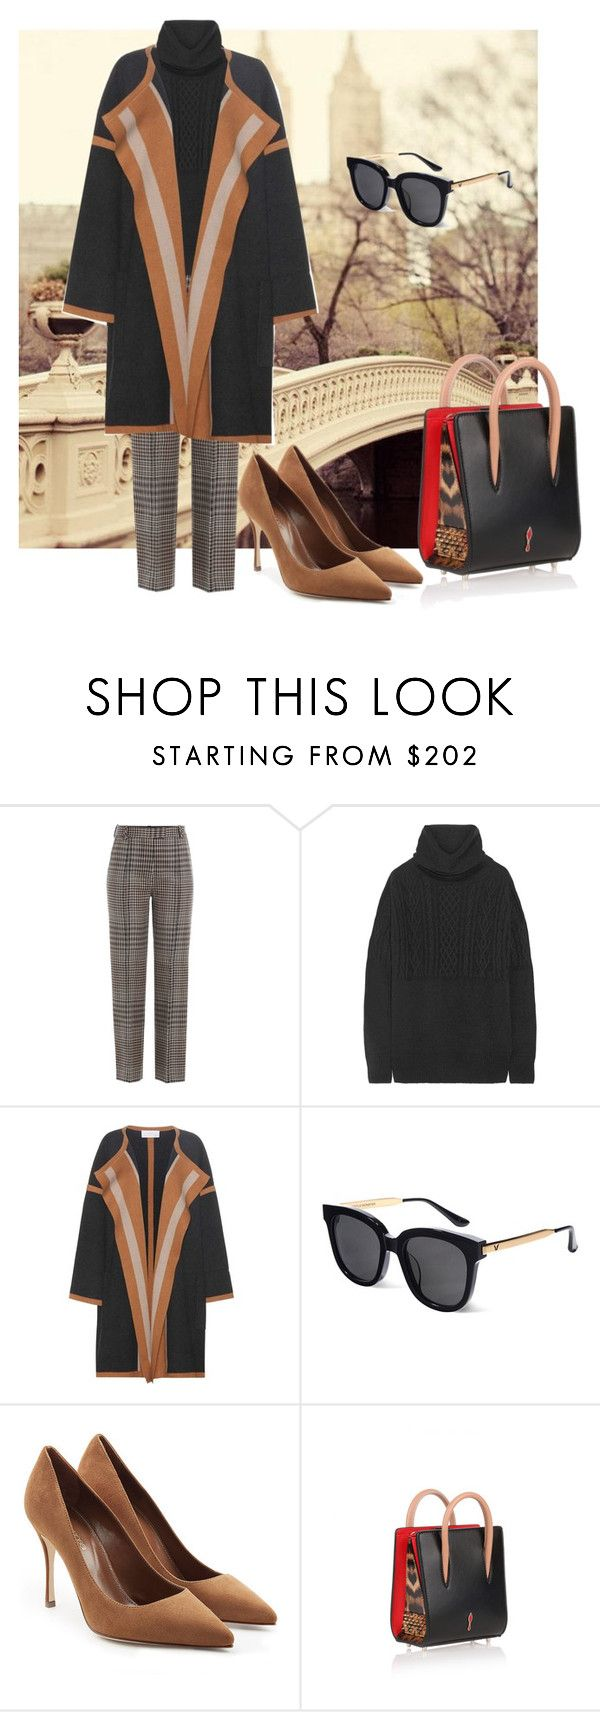 """""""romance"""" by aries-ariessw-sw on Polyvore featuring 3.1 Phillip Lim, The Row, Chloé, Gentle Monster, Sergio Rossi and Christian Louboutin"""